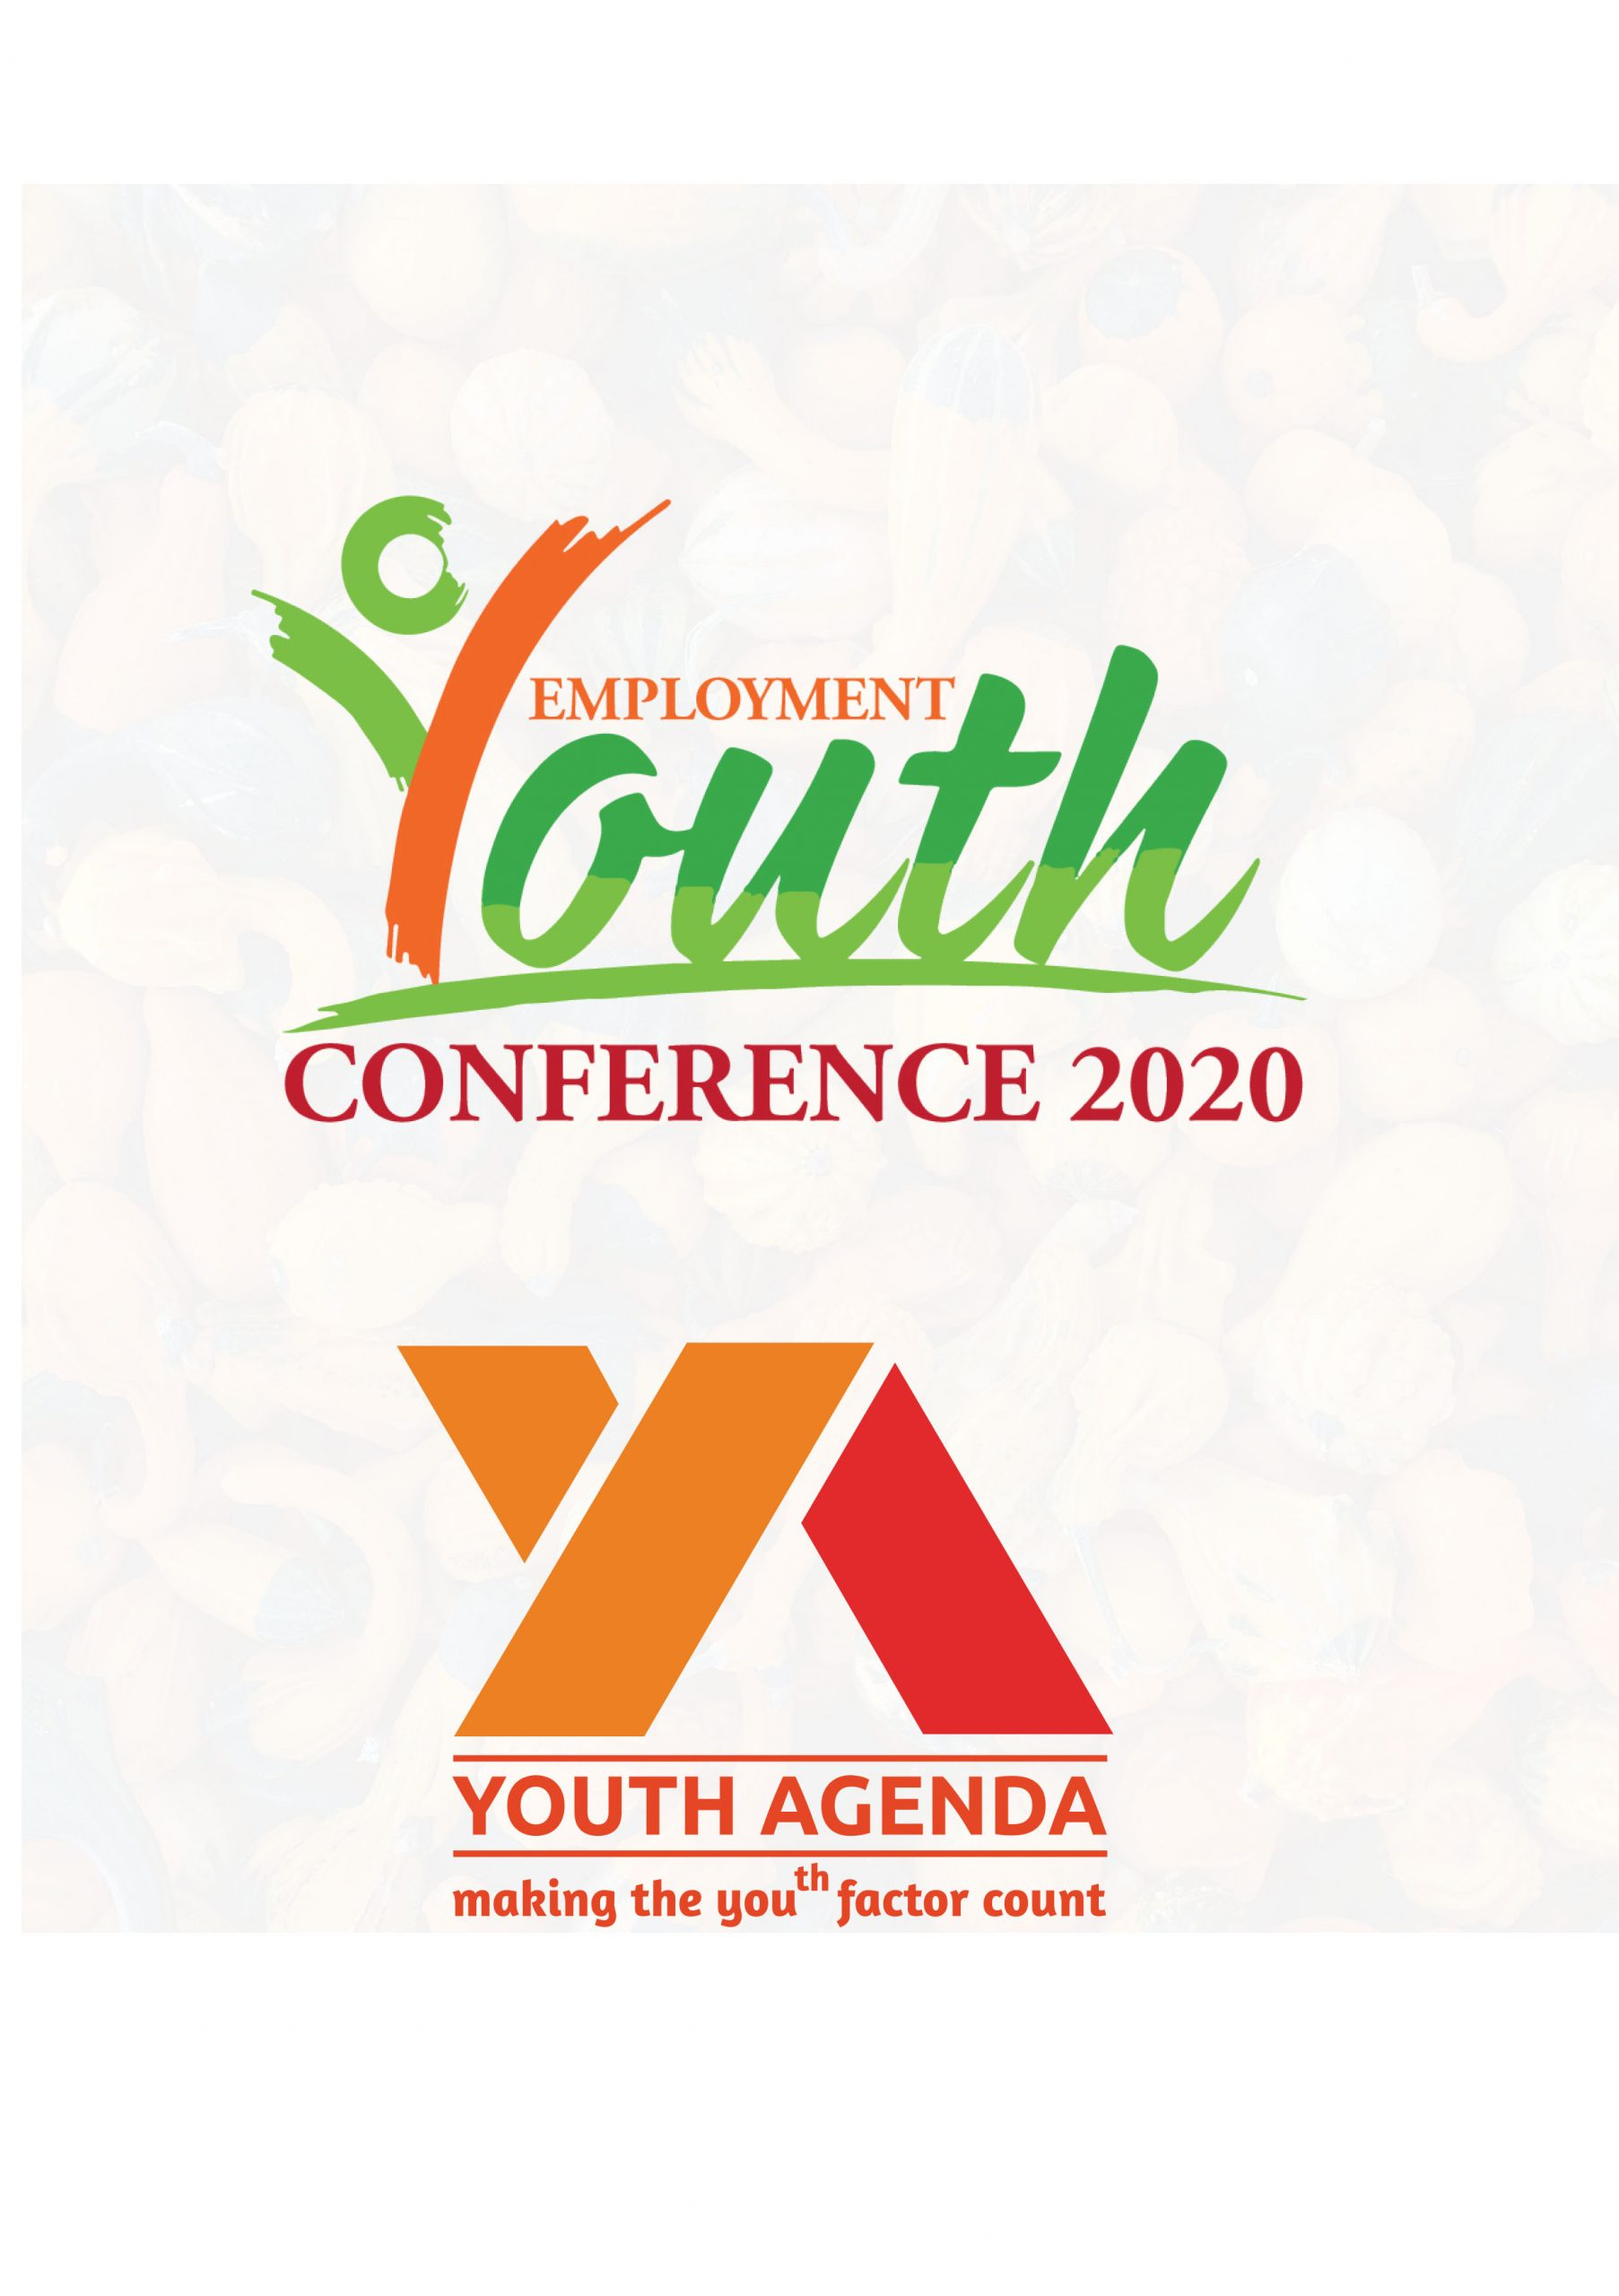 2020 Employment Conference Concept 2